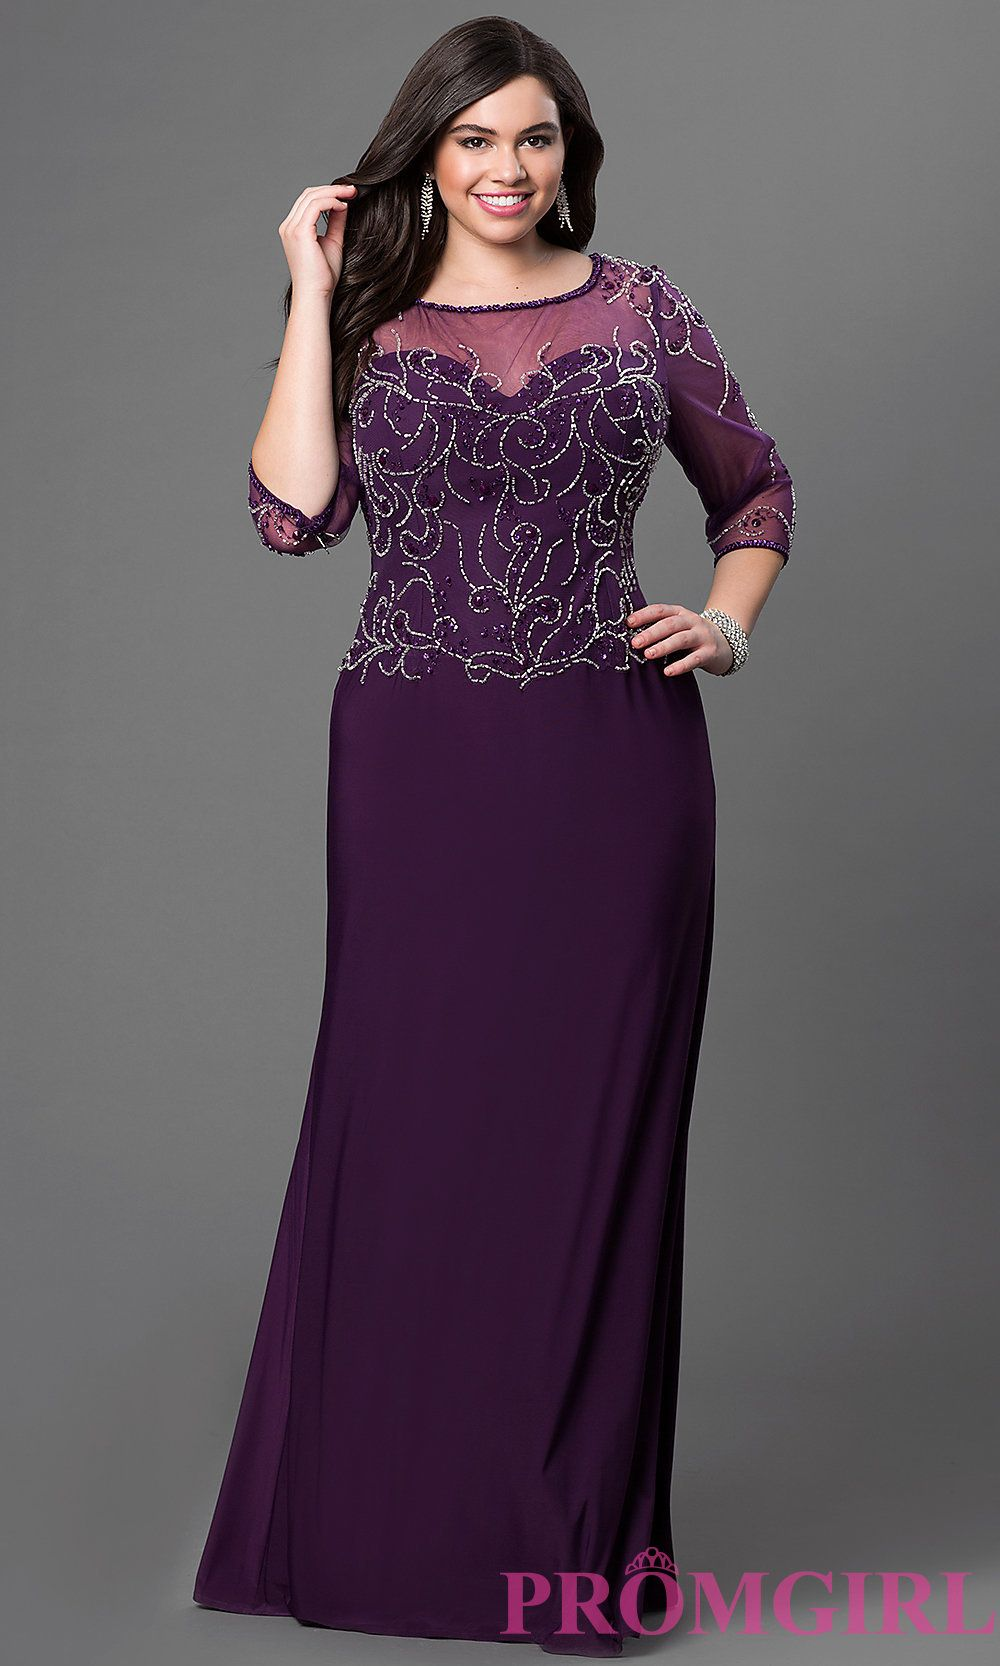 Plus Size Floor Length Formal Dress With Jewel Embellished Bodice